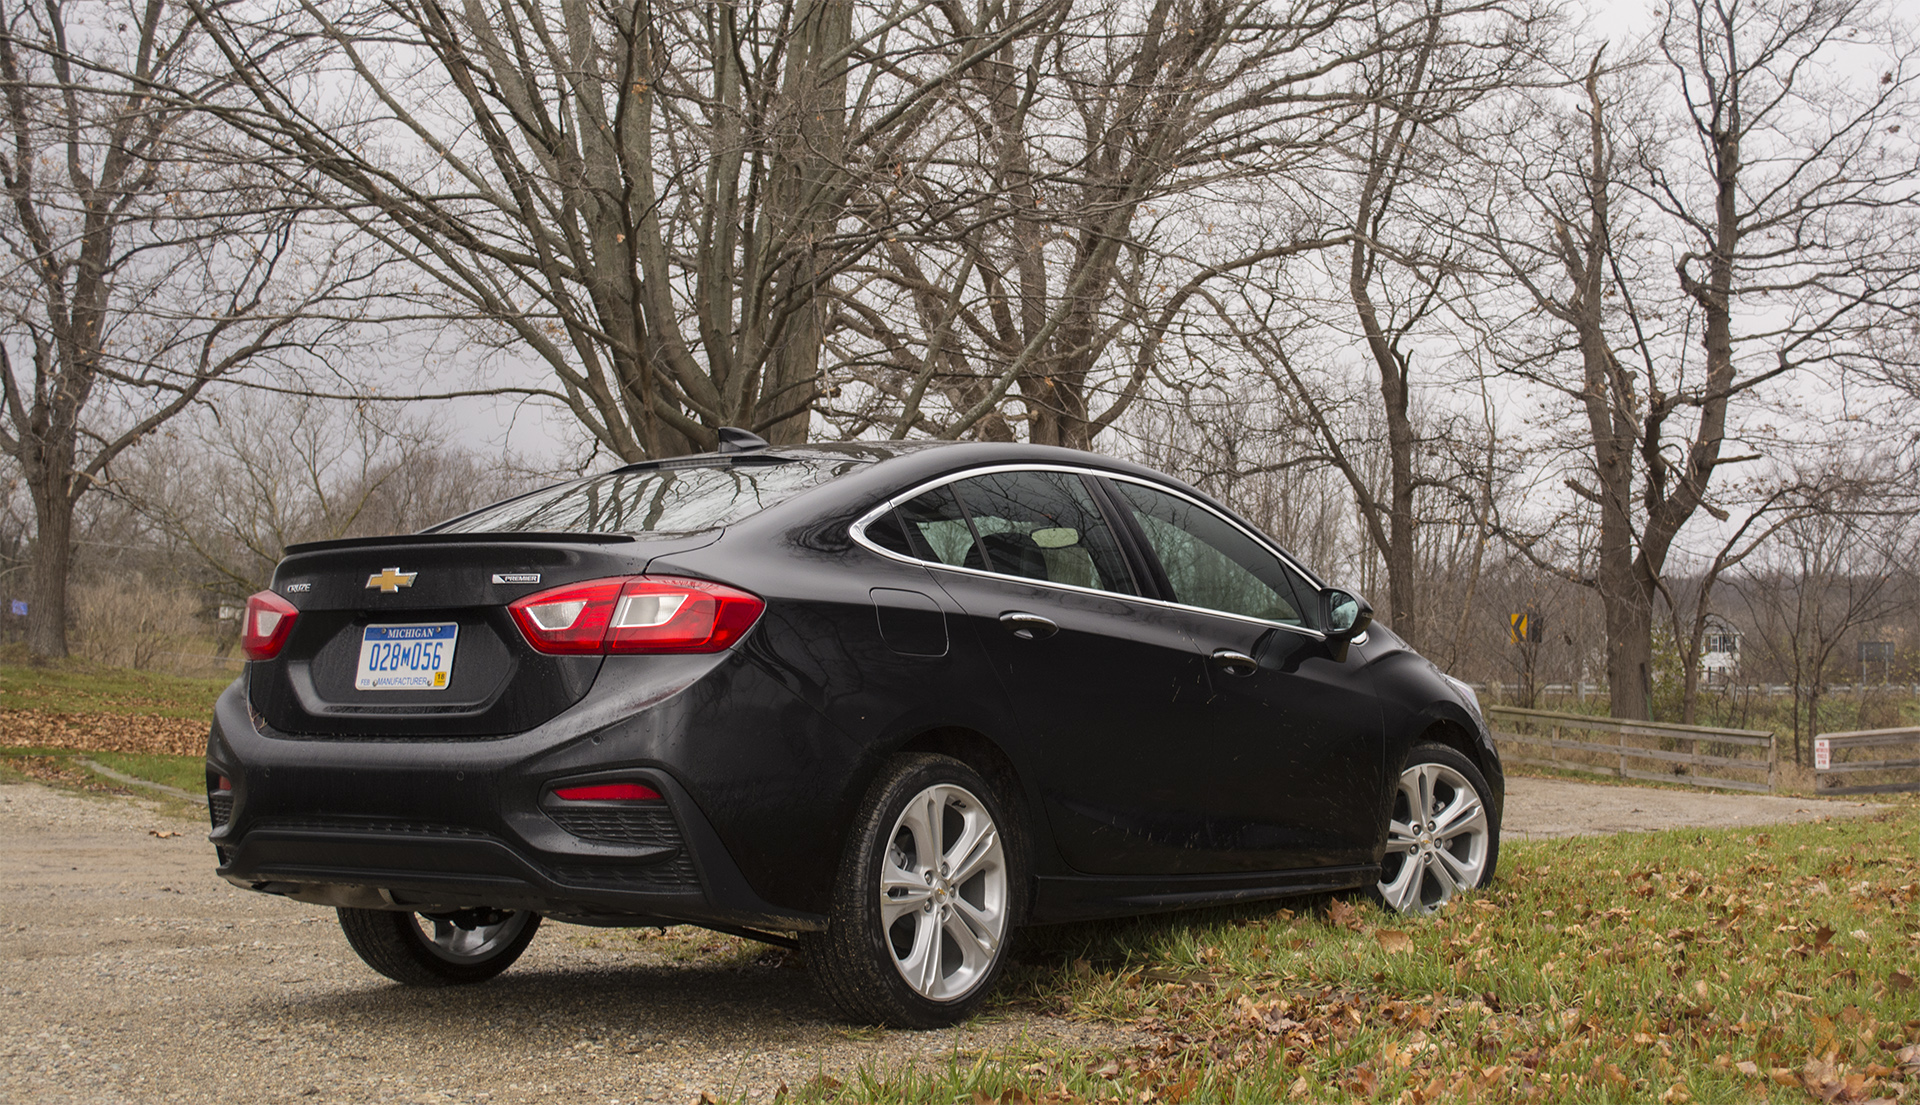 You can learn more about the 2017 Cruze now, in the FULL REVIEW HERE .